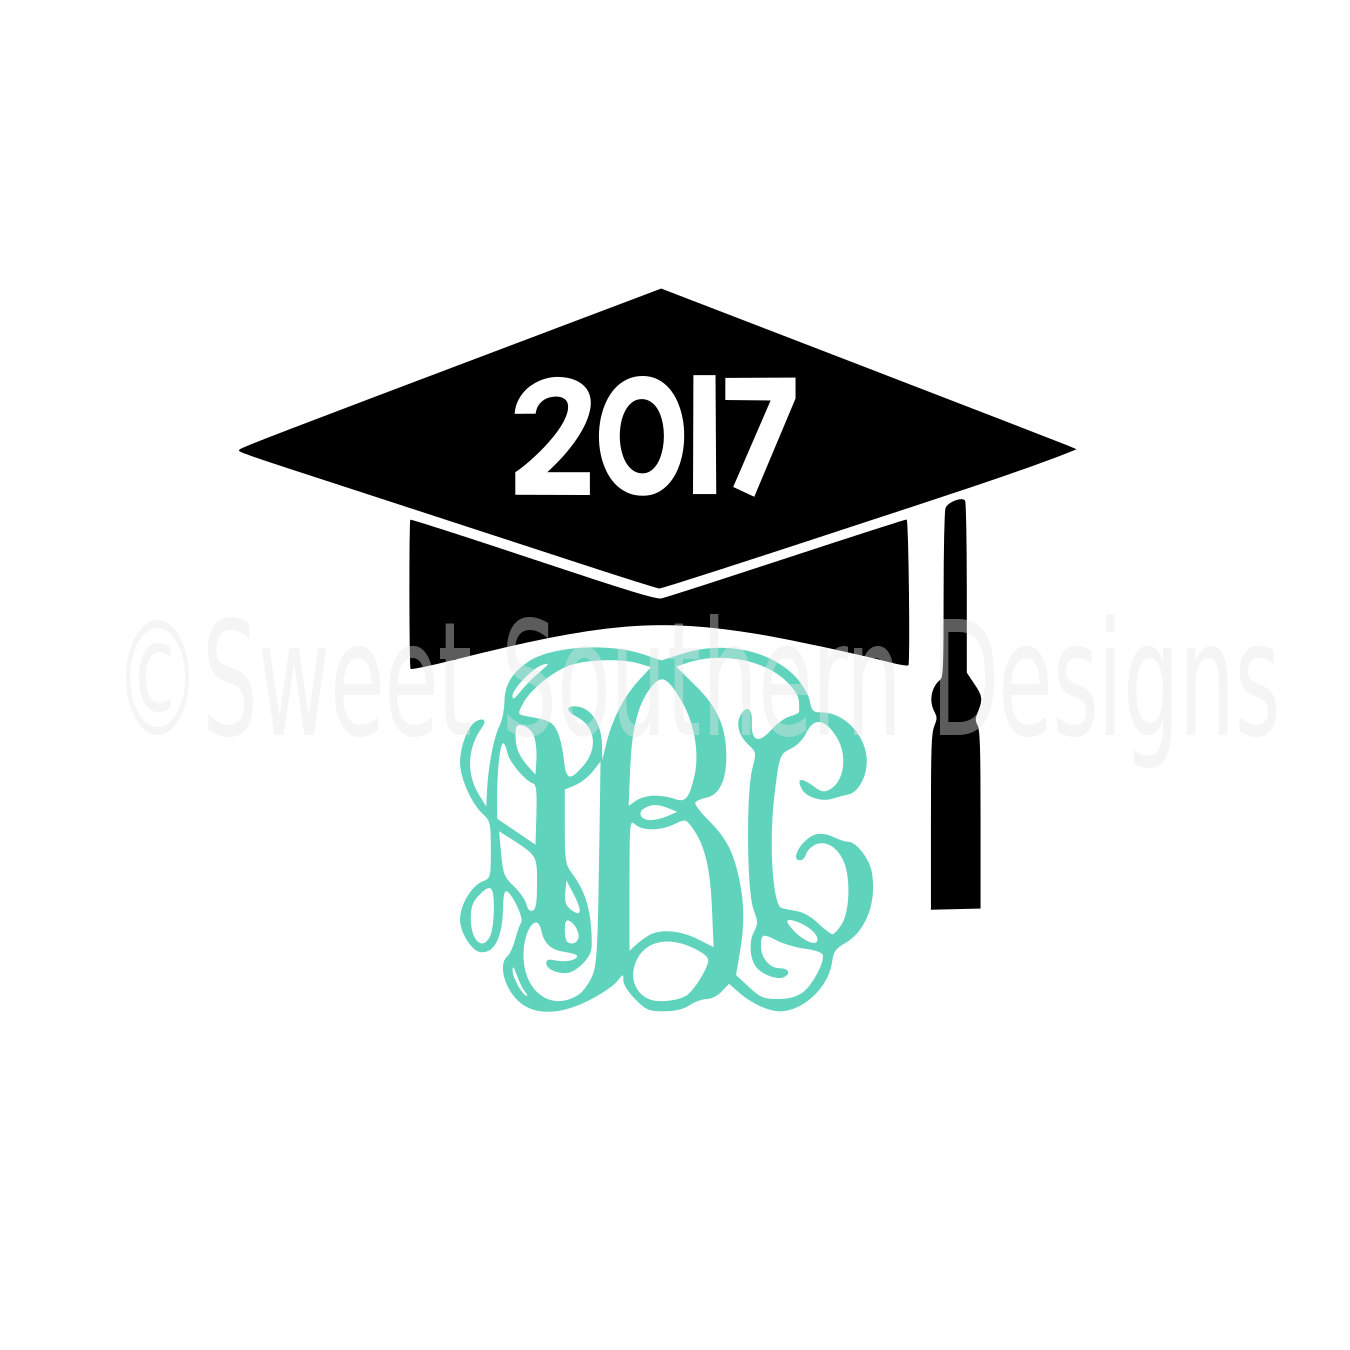 2017 cap clipart jpg transparent download Graduation Cap And Tassel Clipart | Free download best Graduation ... jpg transparent download